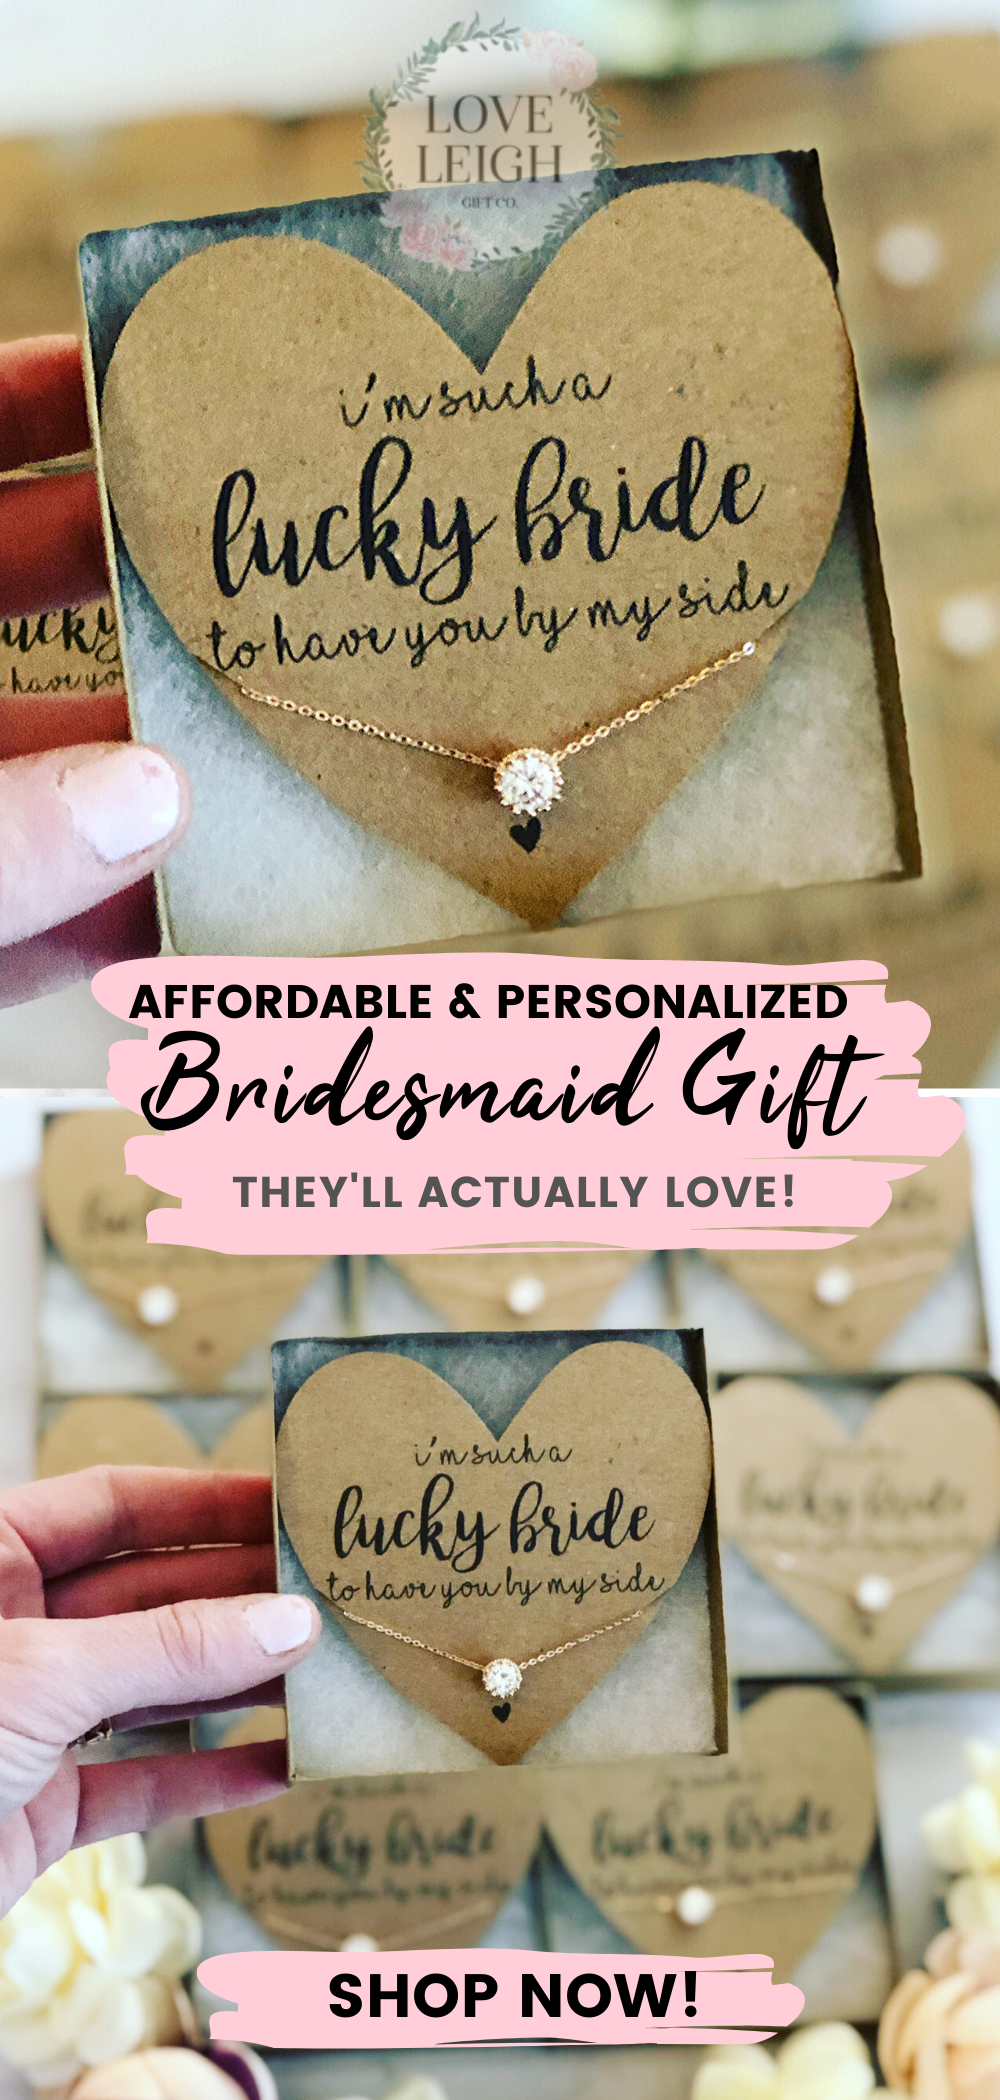 Bridesmaid Gift Idea / Bridal Party Ideas / Affordable and Personalized Bridesmaid Gifts / Jewelry